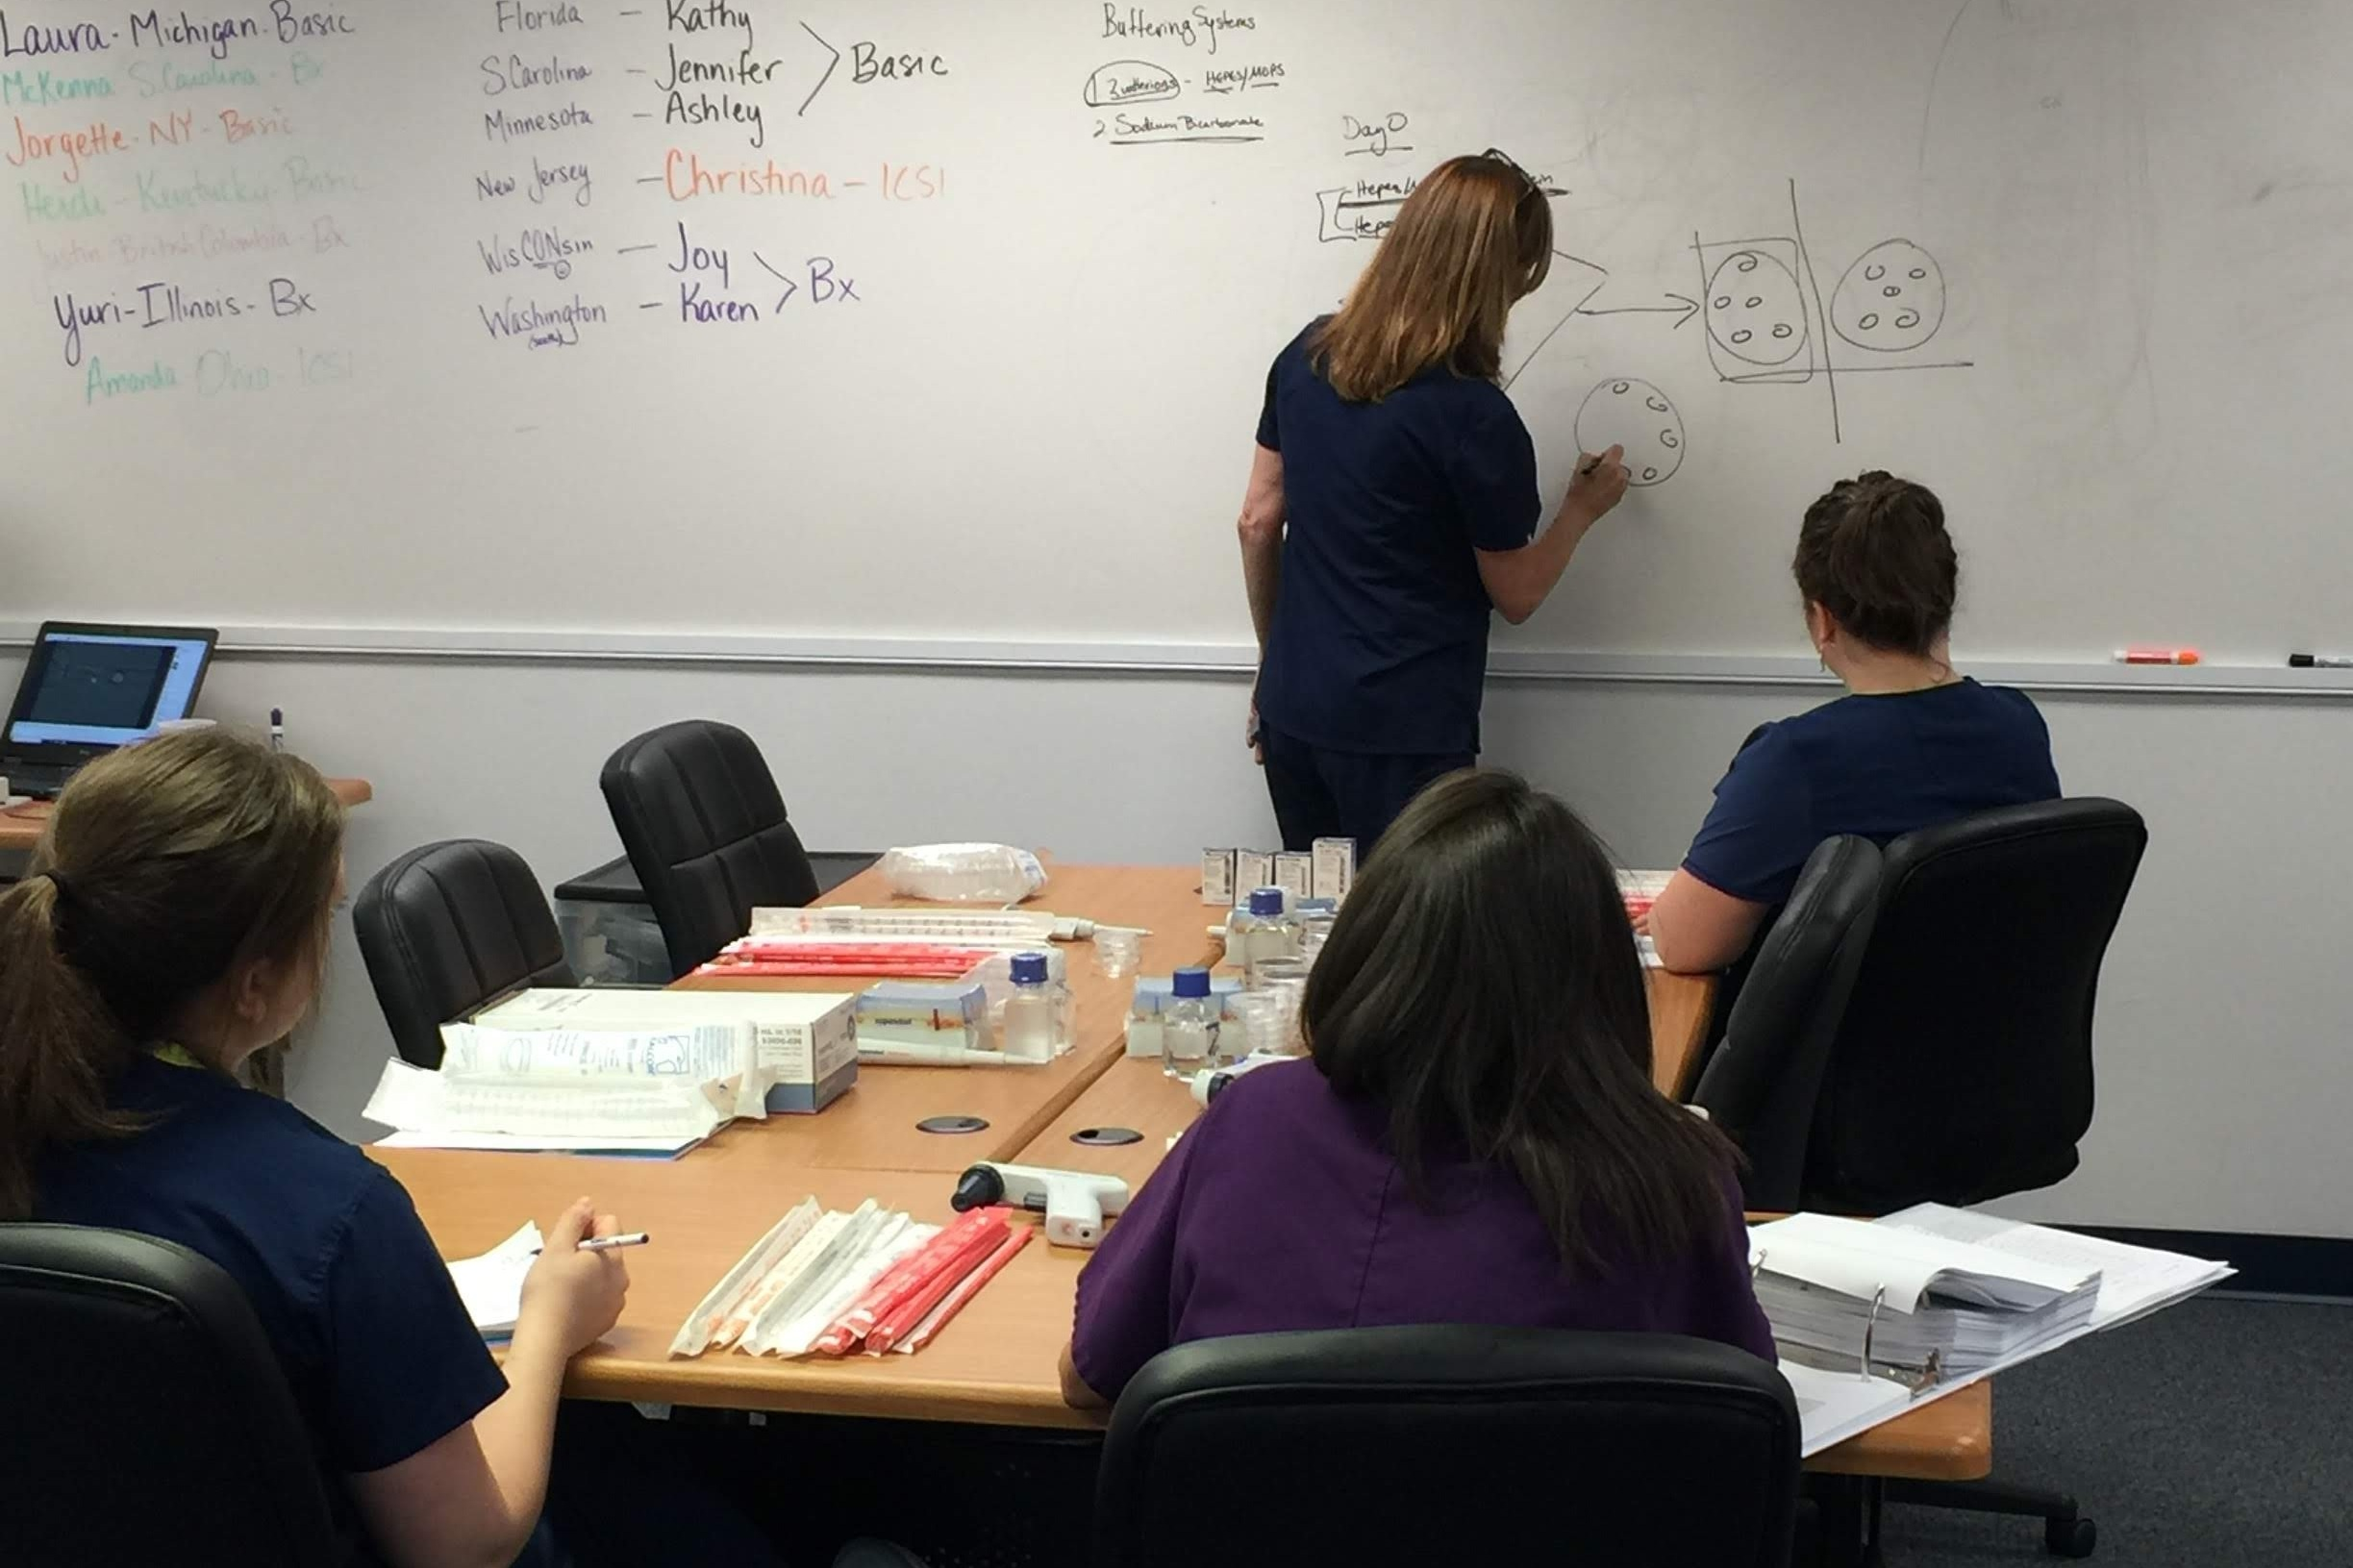 Kathy Miller Training at the OvaTools Training Institute for Andology and Embryology.